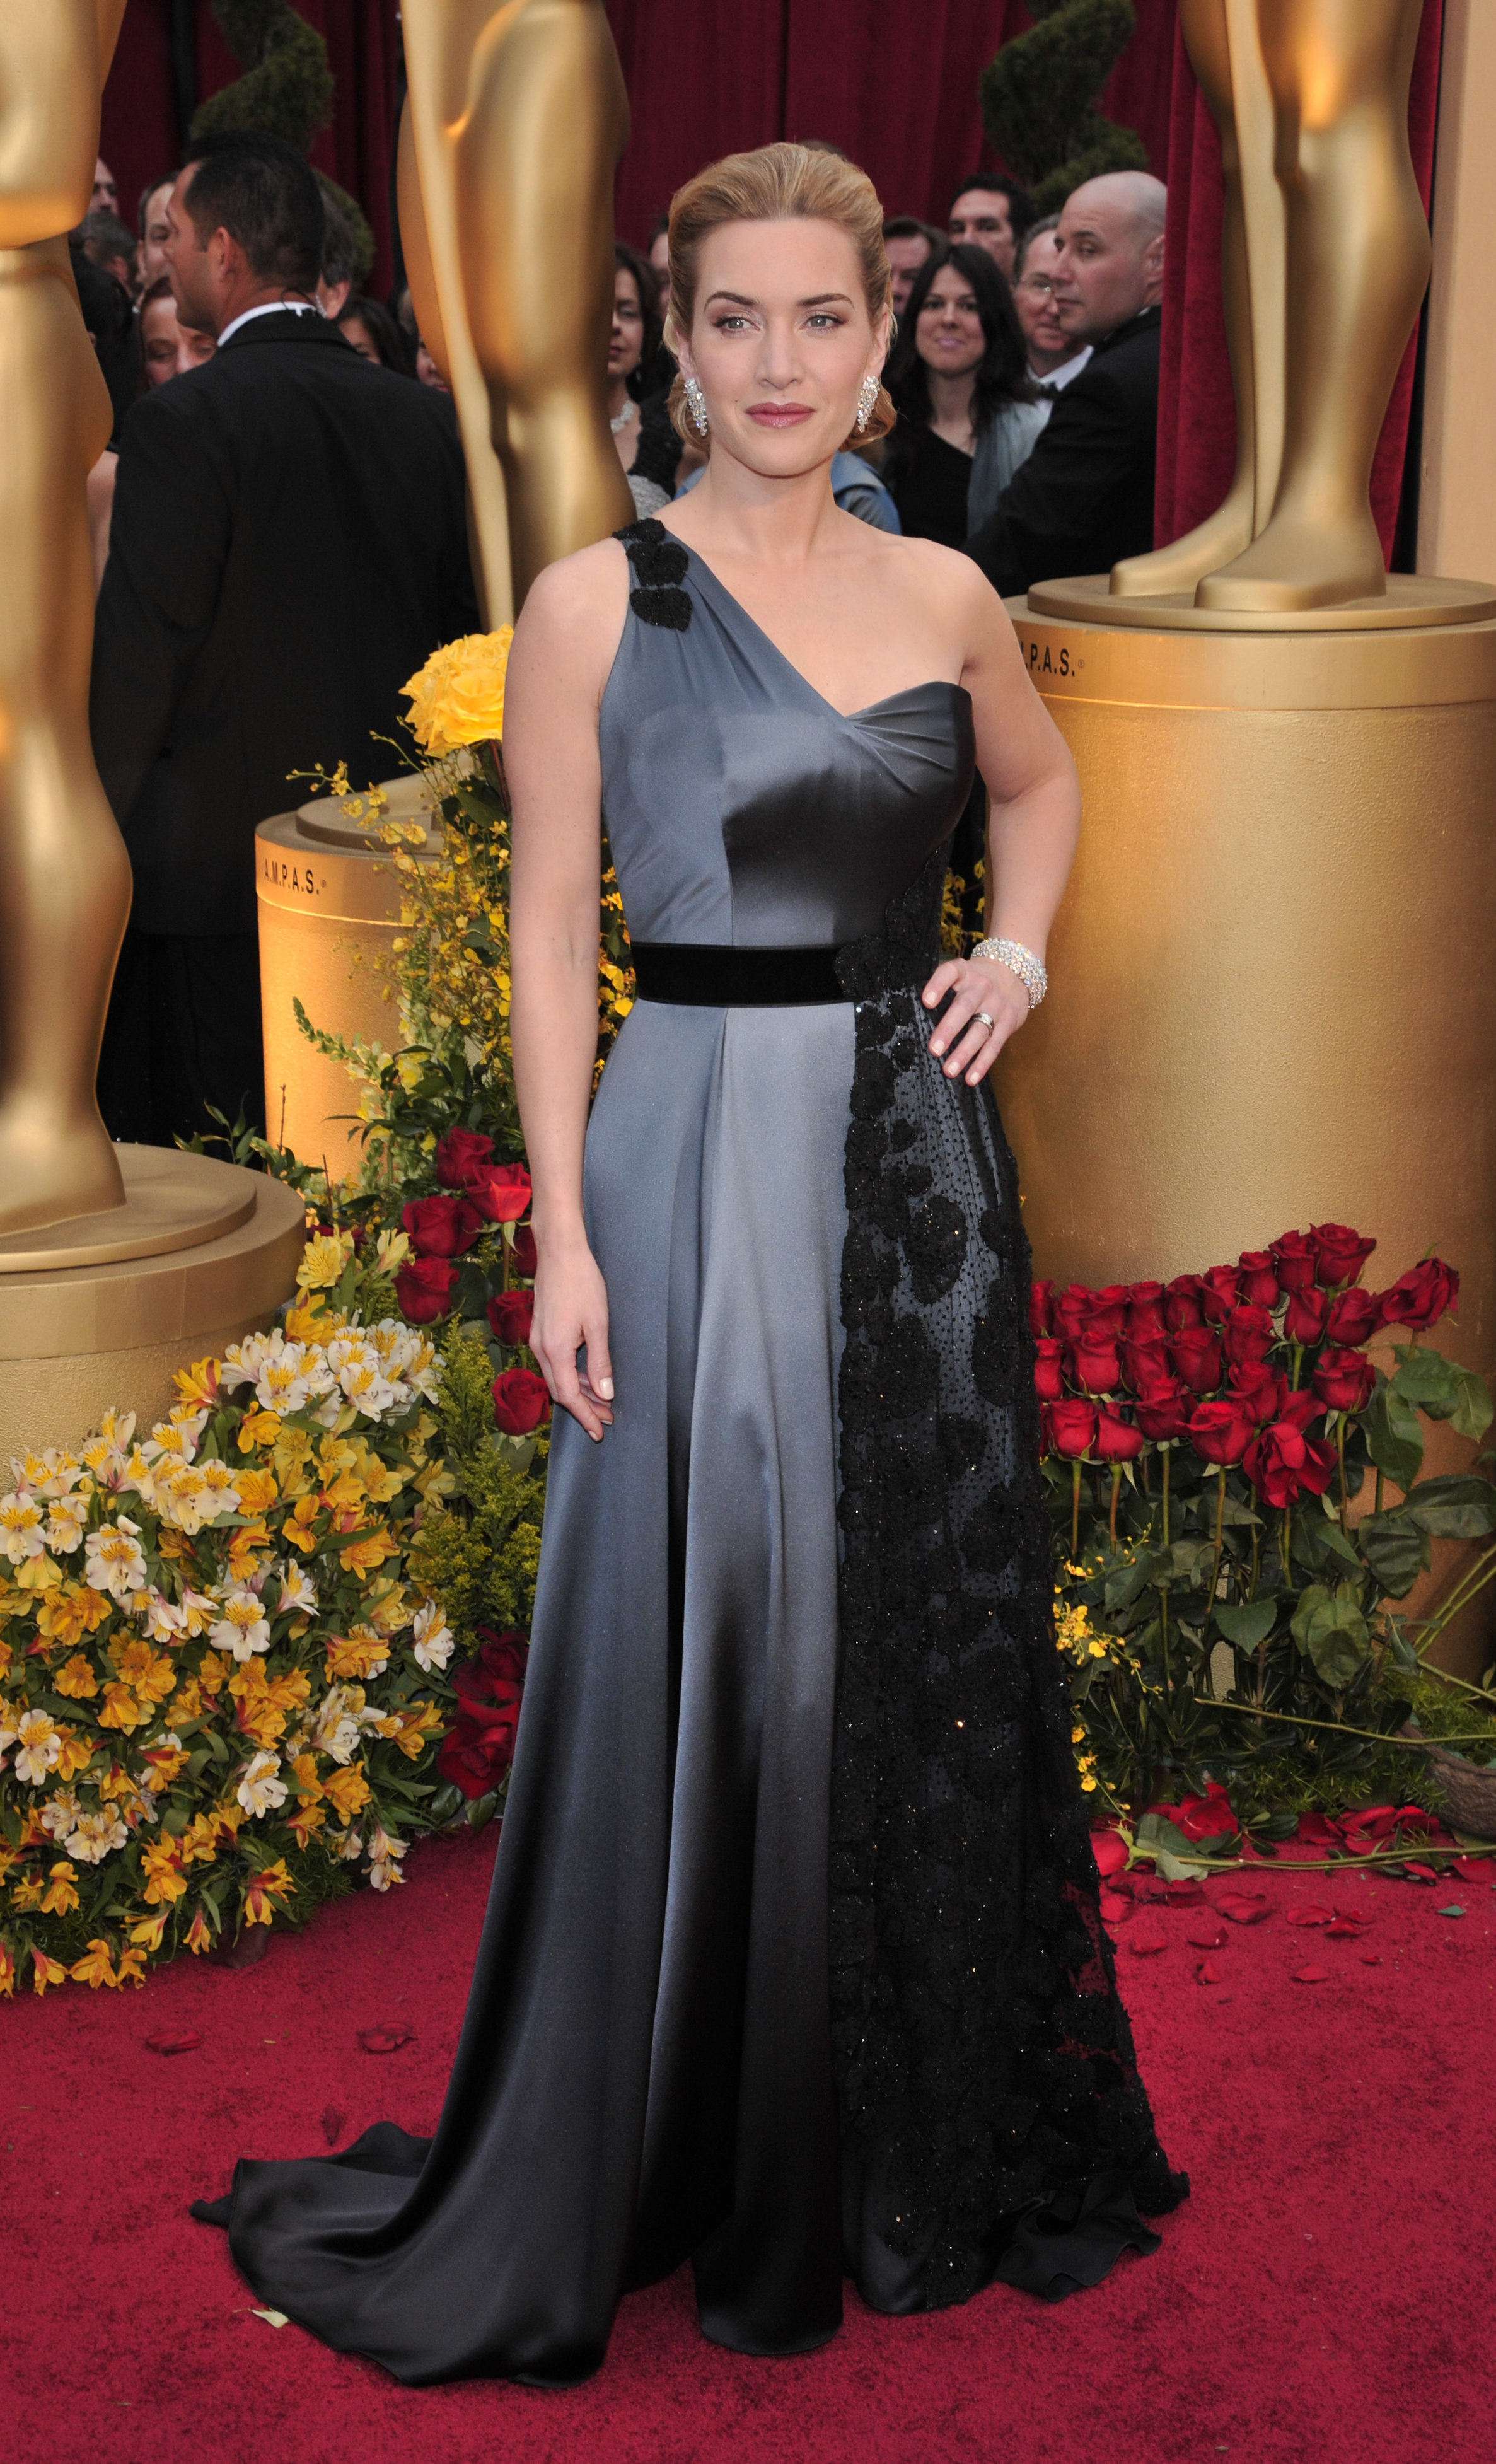 Kate Winslet attends the 81st Annual Academy Awards in Los Angeles on Feb. 22, 2009.